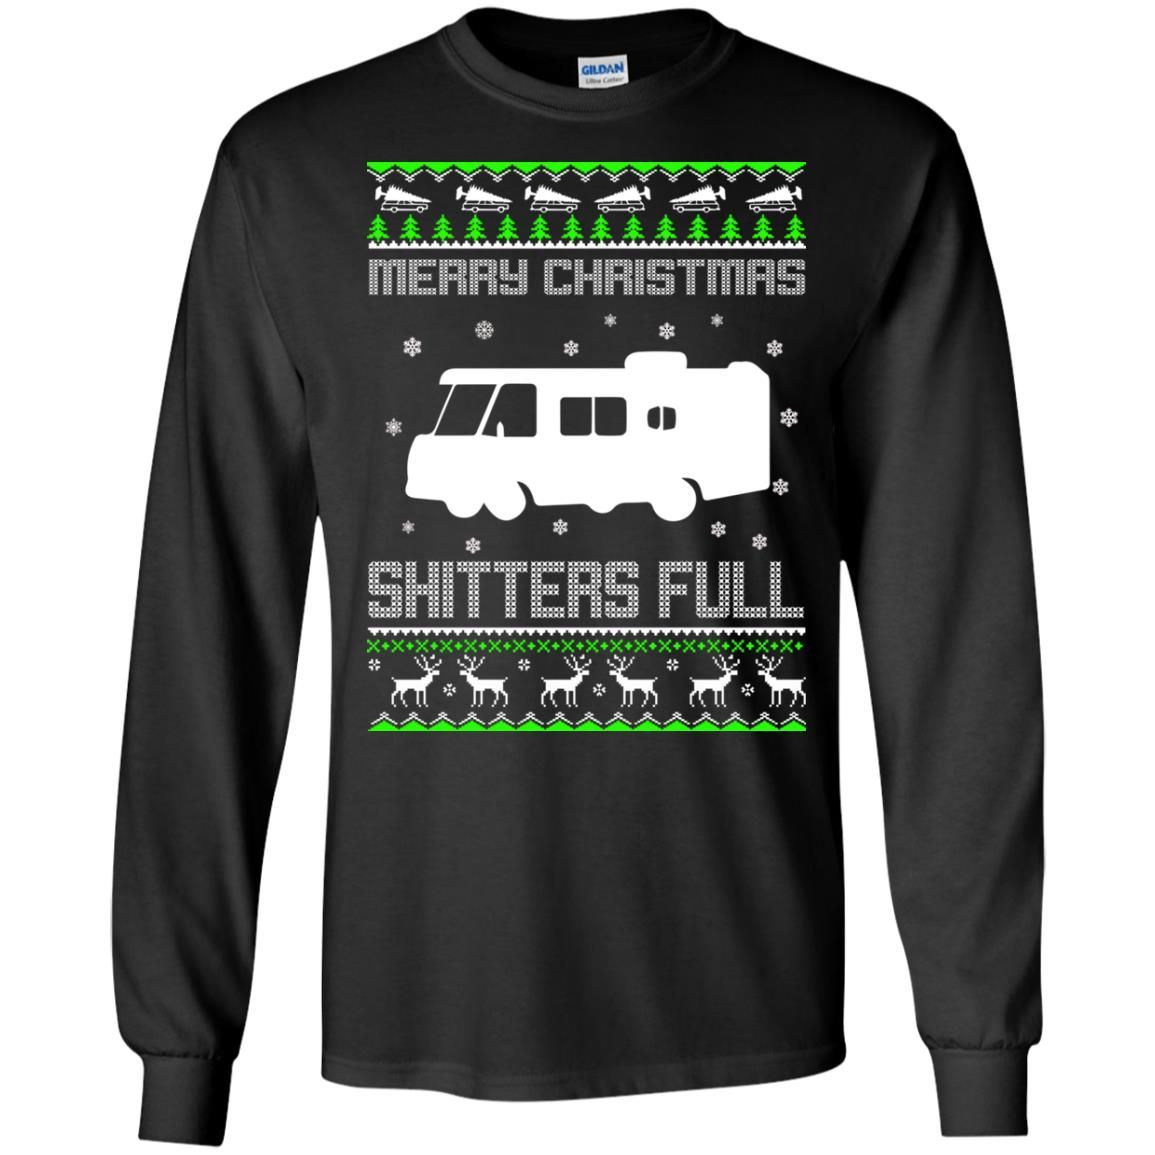 image 1565 - Christmas Vacation: Merry Christmas Shitter's full ugly sweater, hoodie